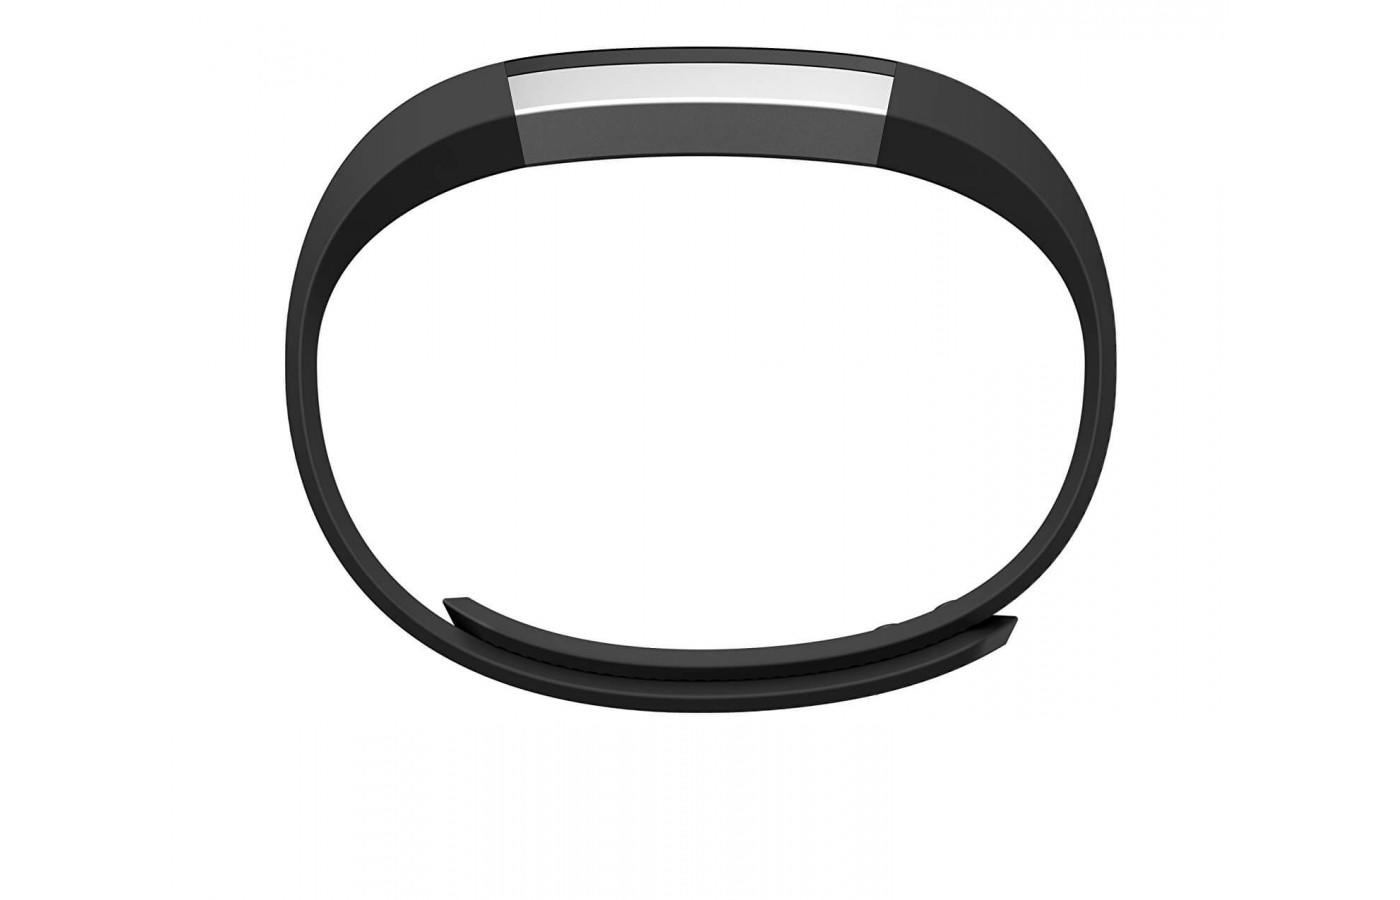 A sleek and slim band.